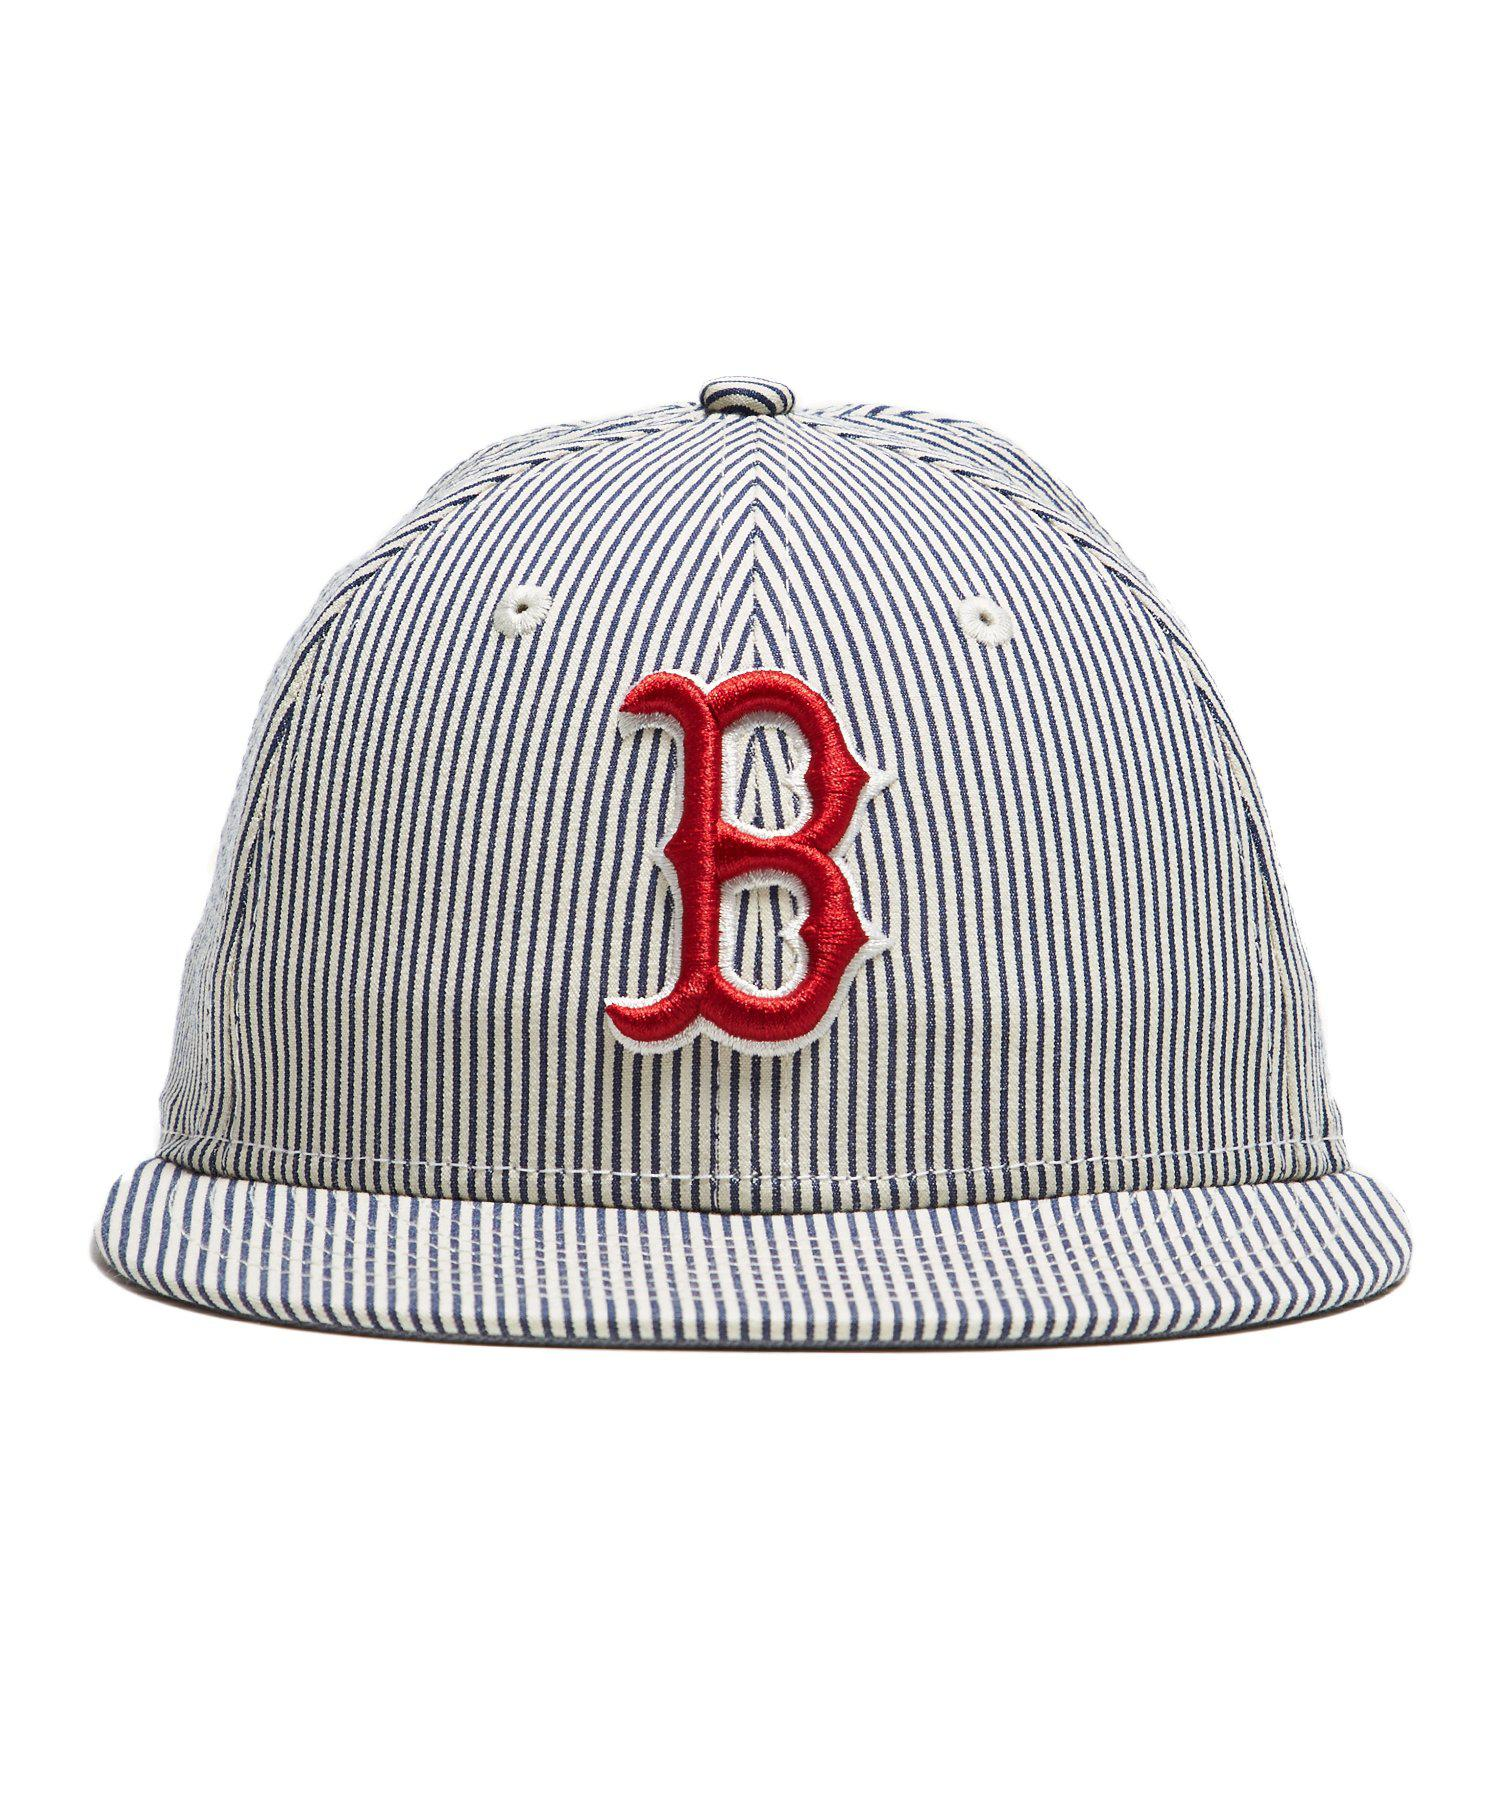 8de7ca2cb03 NEW ERA HATS. Men s Blue Boston Red Sox Cap In Seersucker. £60 £45 From Todd  Snyder ...